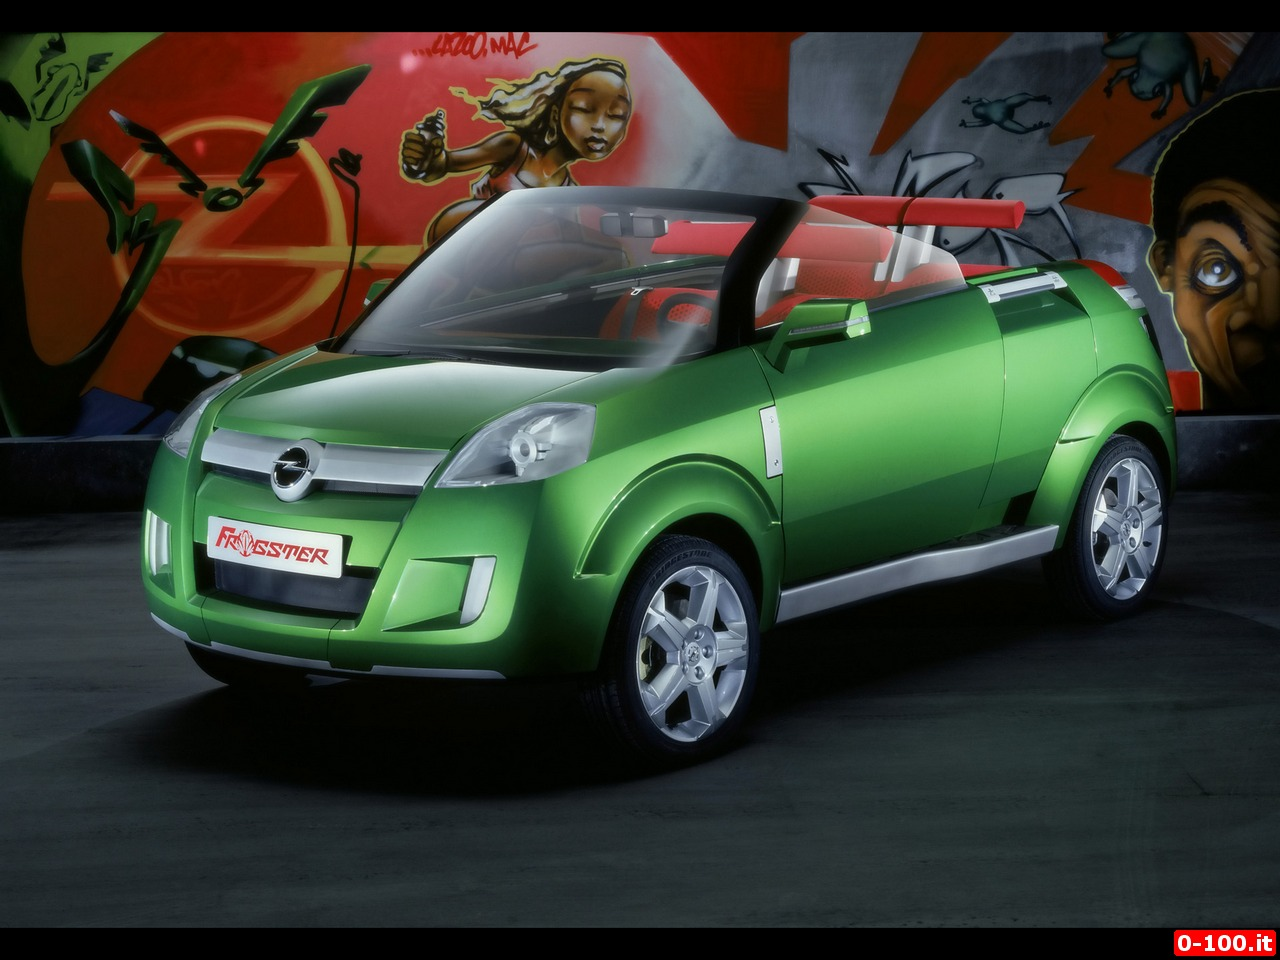 opel-frogster-concept-0-100